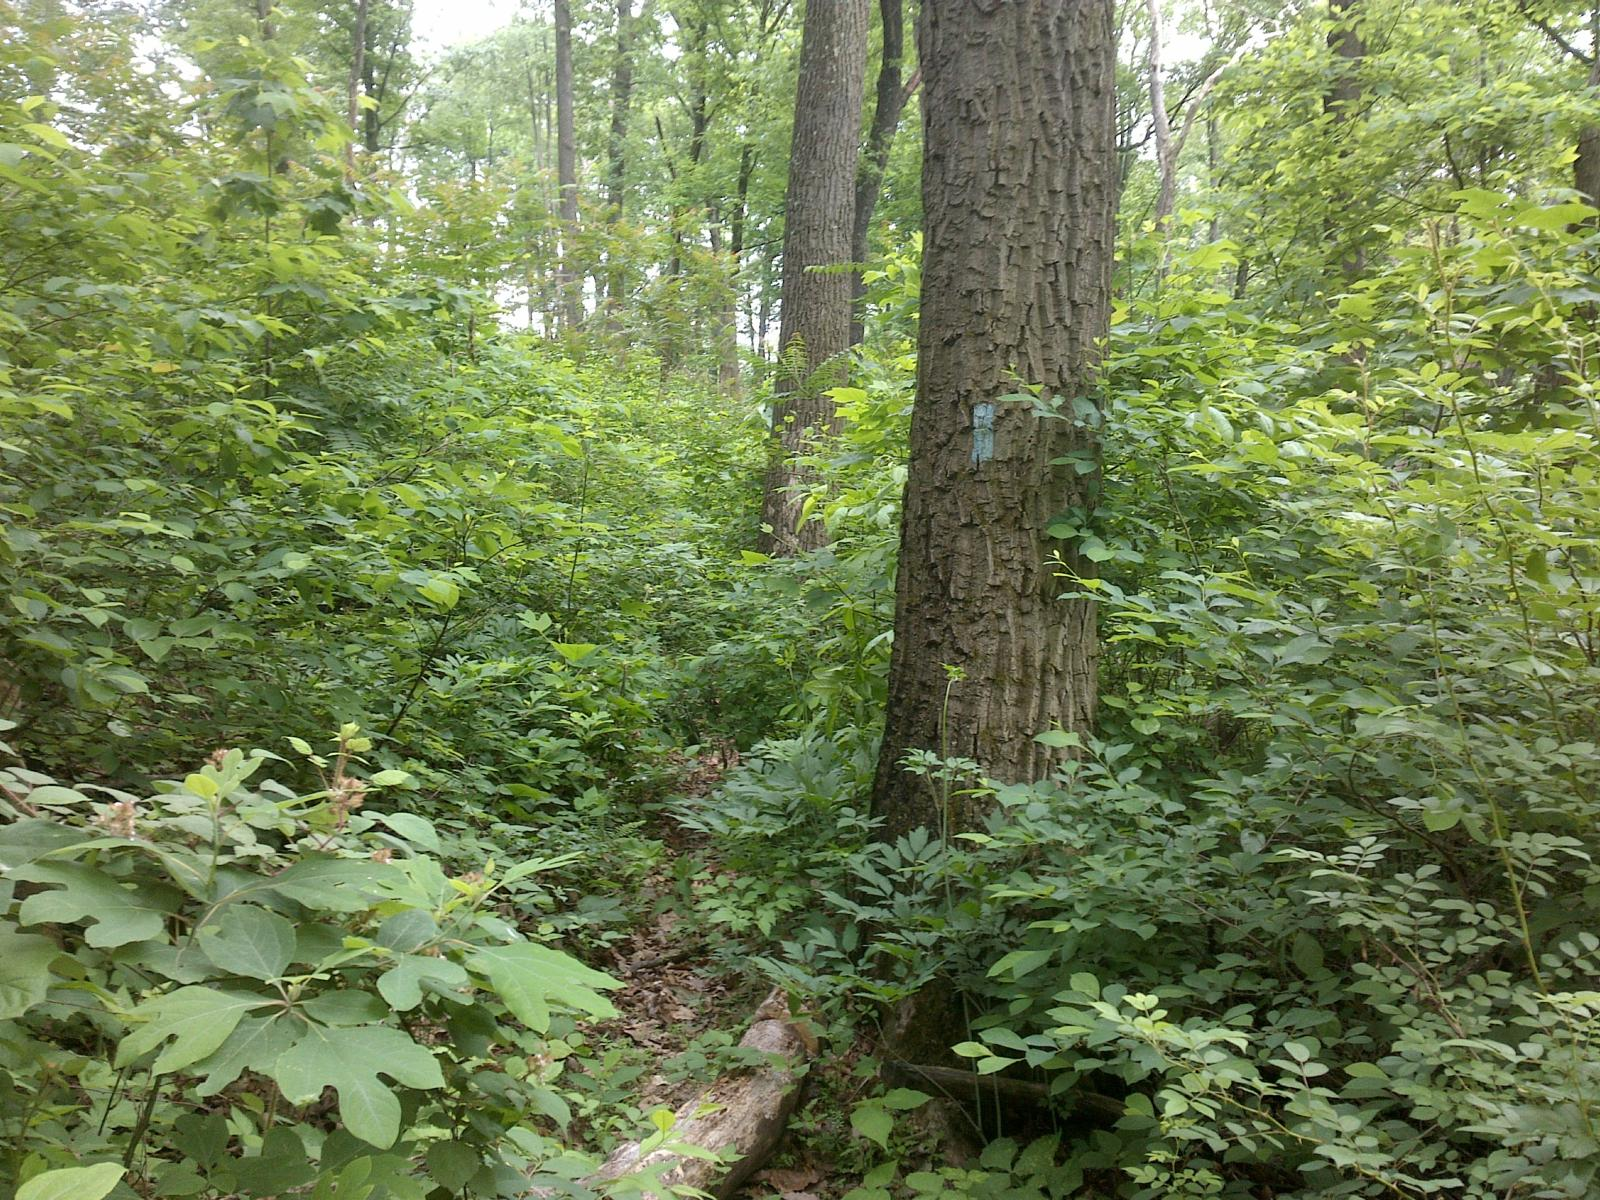 mynd af North Country Trail, Buckeye Trail, American Discovery Trail - Tar Hollow State Forest 2017-05-24 13:44:03